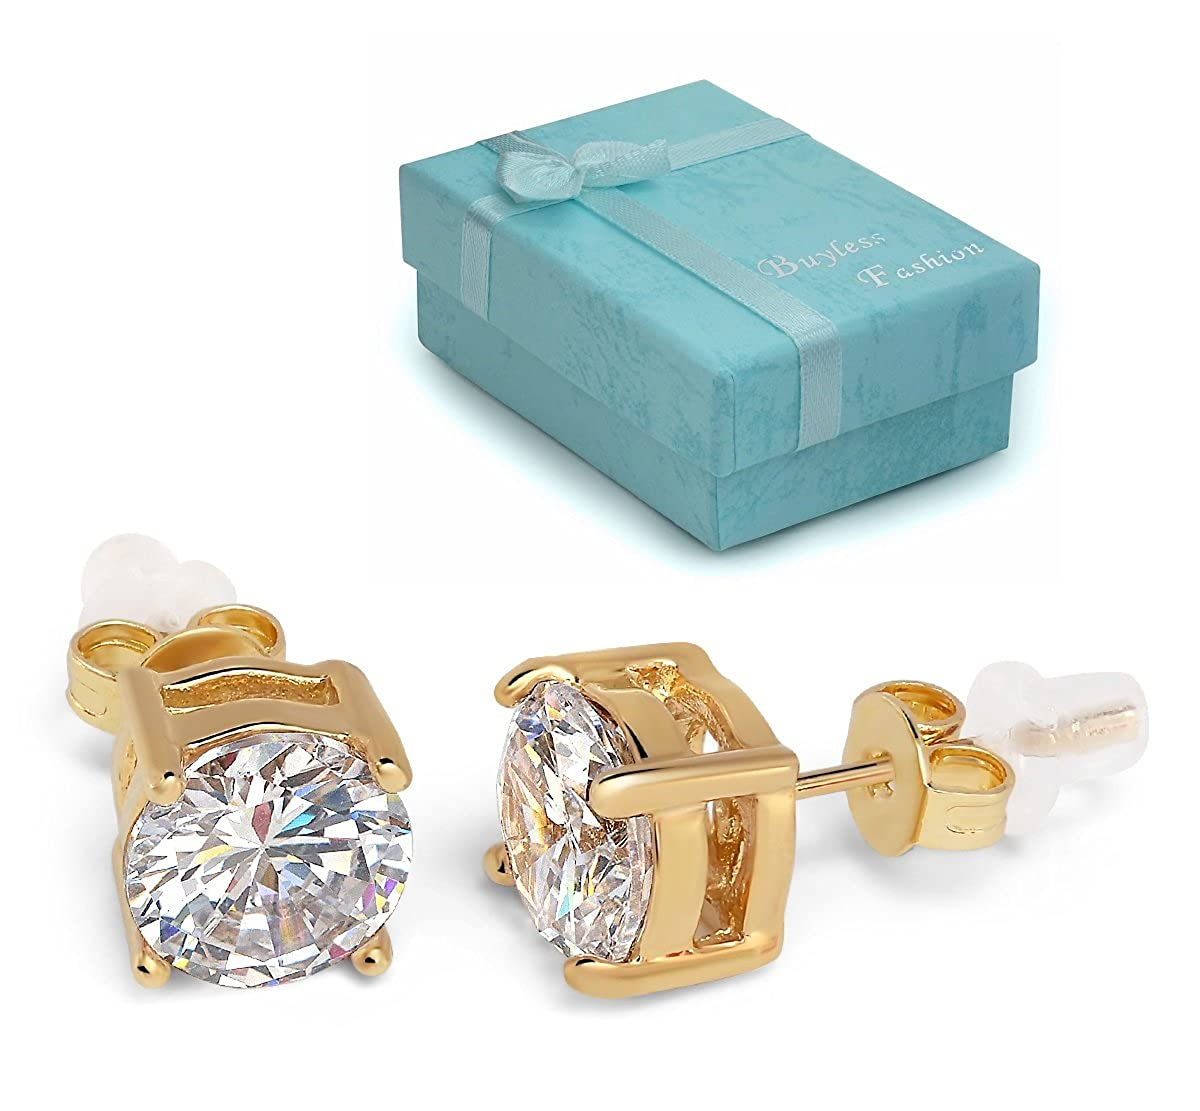 Buyless Fashion Girls Stud Earrings Round Crystal Gold Stainless Steel Gift Box